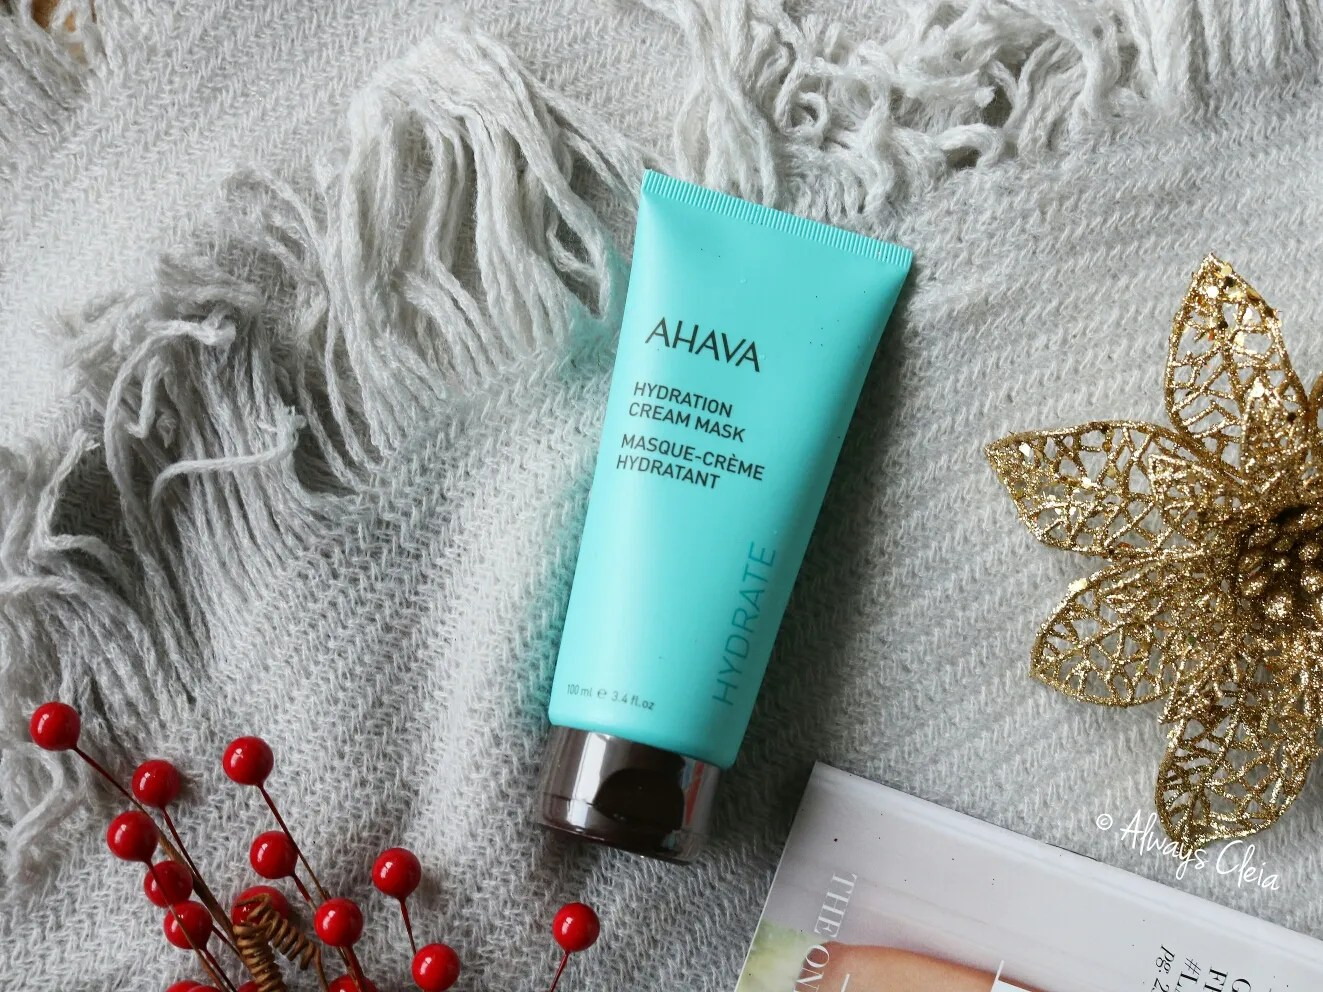 Fabfitfun AHAVA Hydration Cream Mask